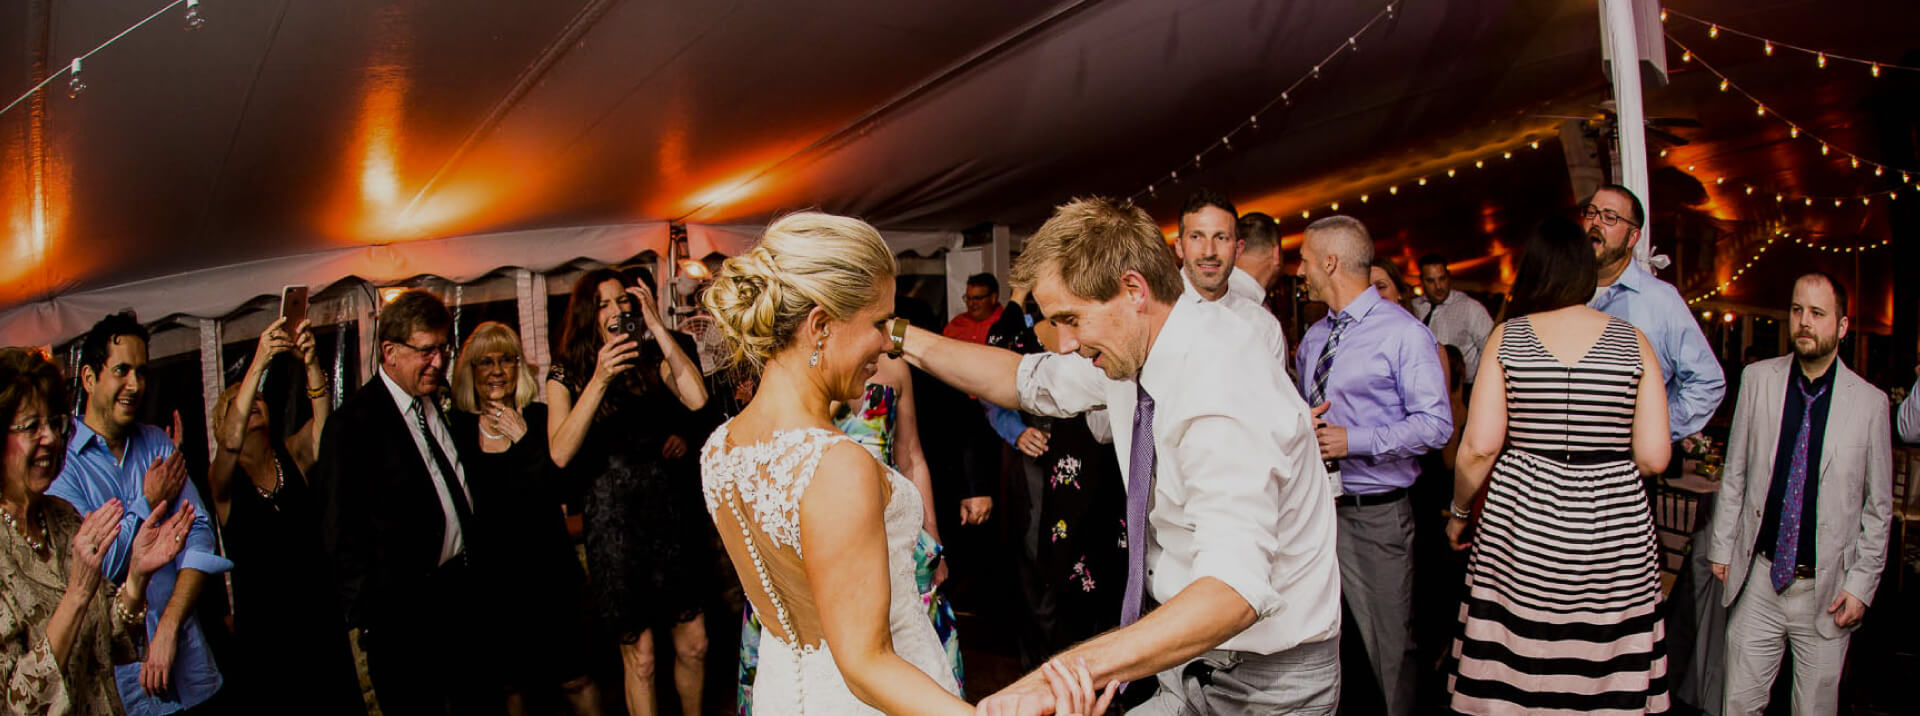 bride and groome dancing at their wedding, surrounded by friends and family